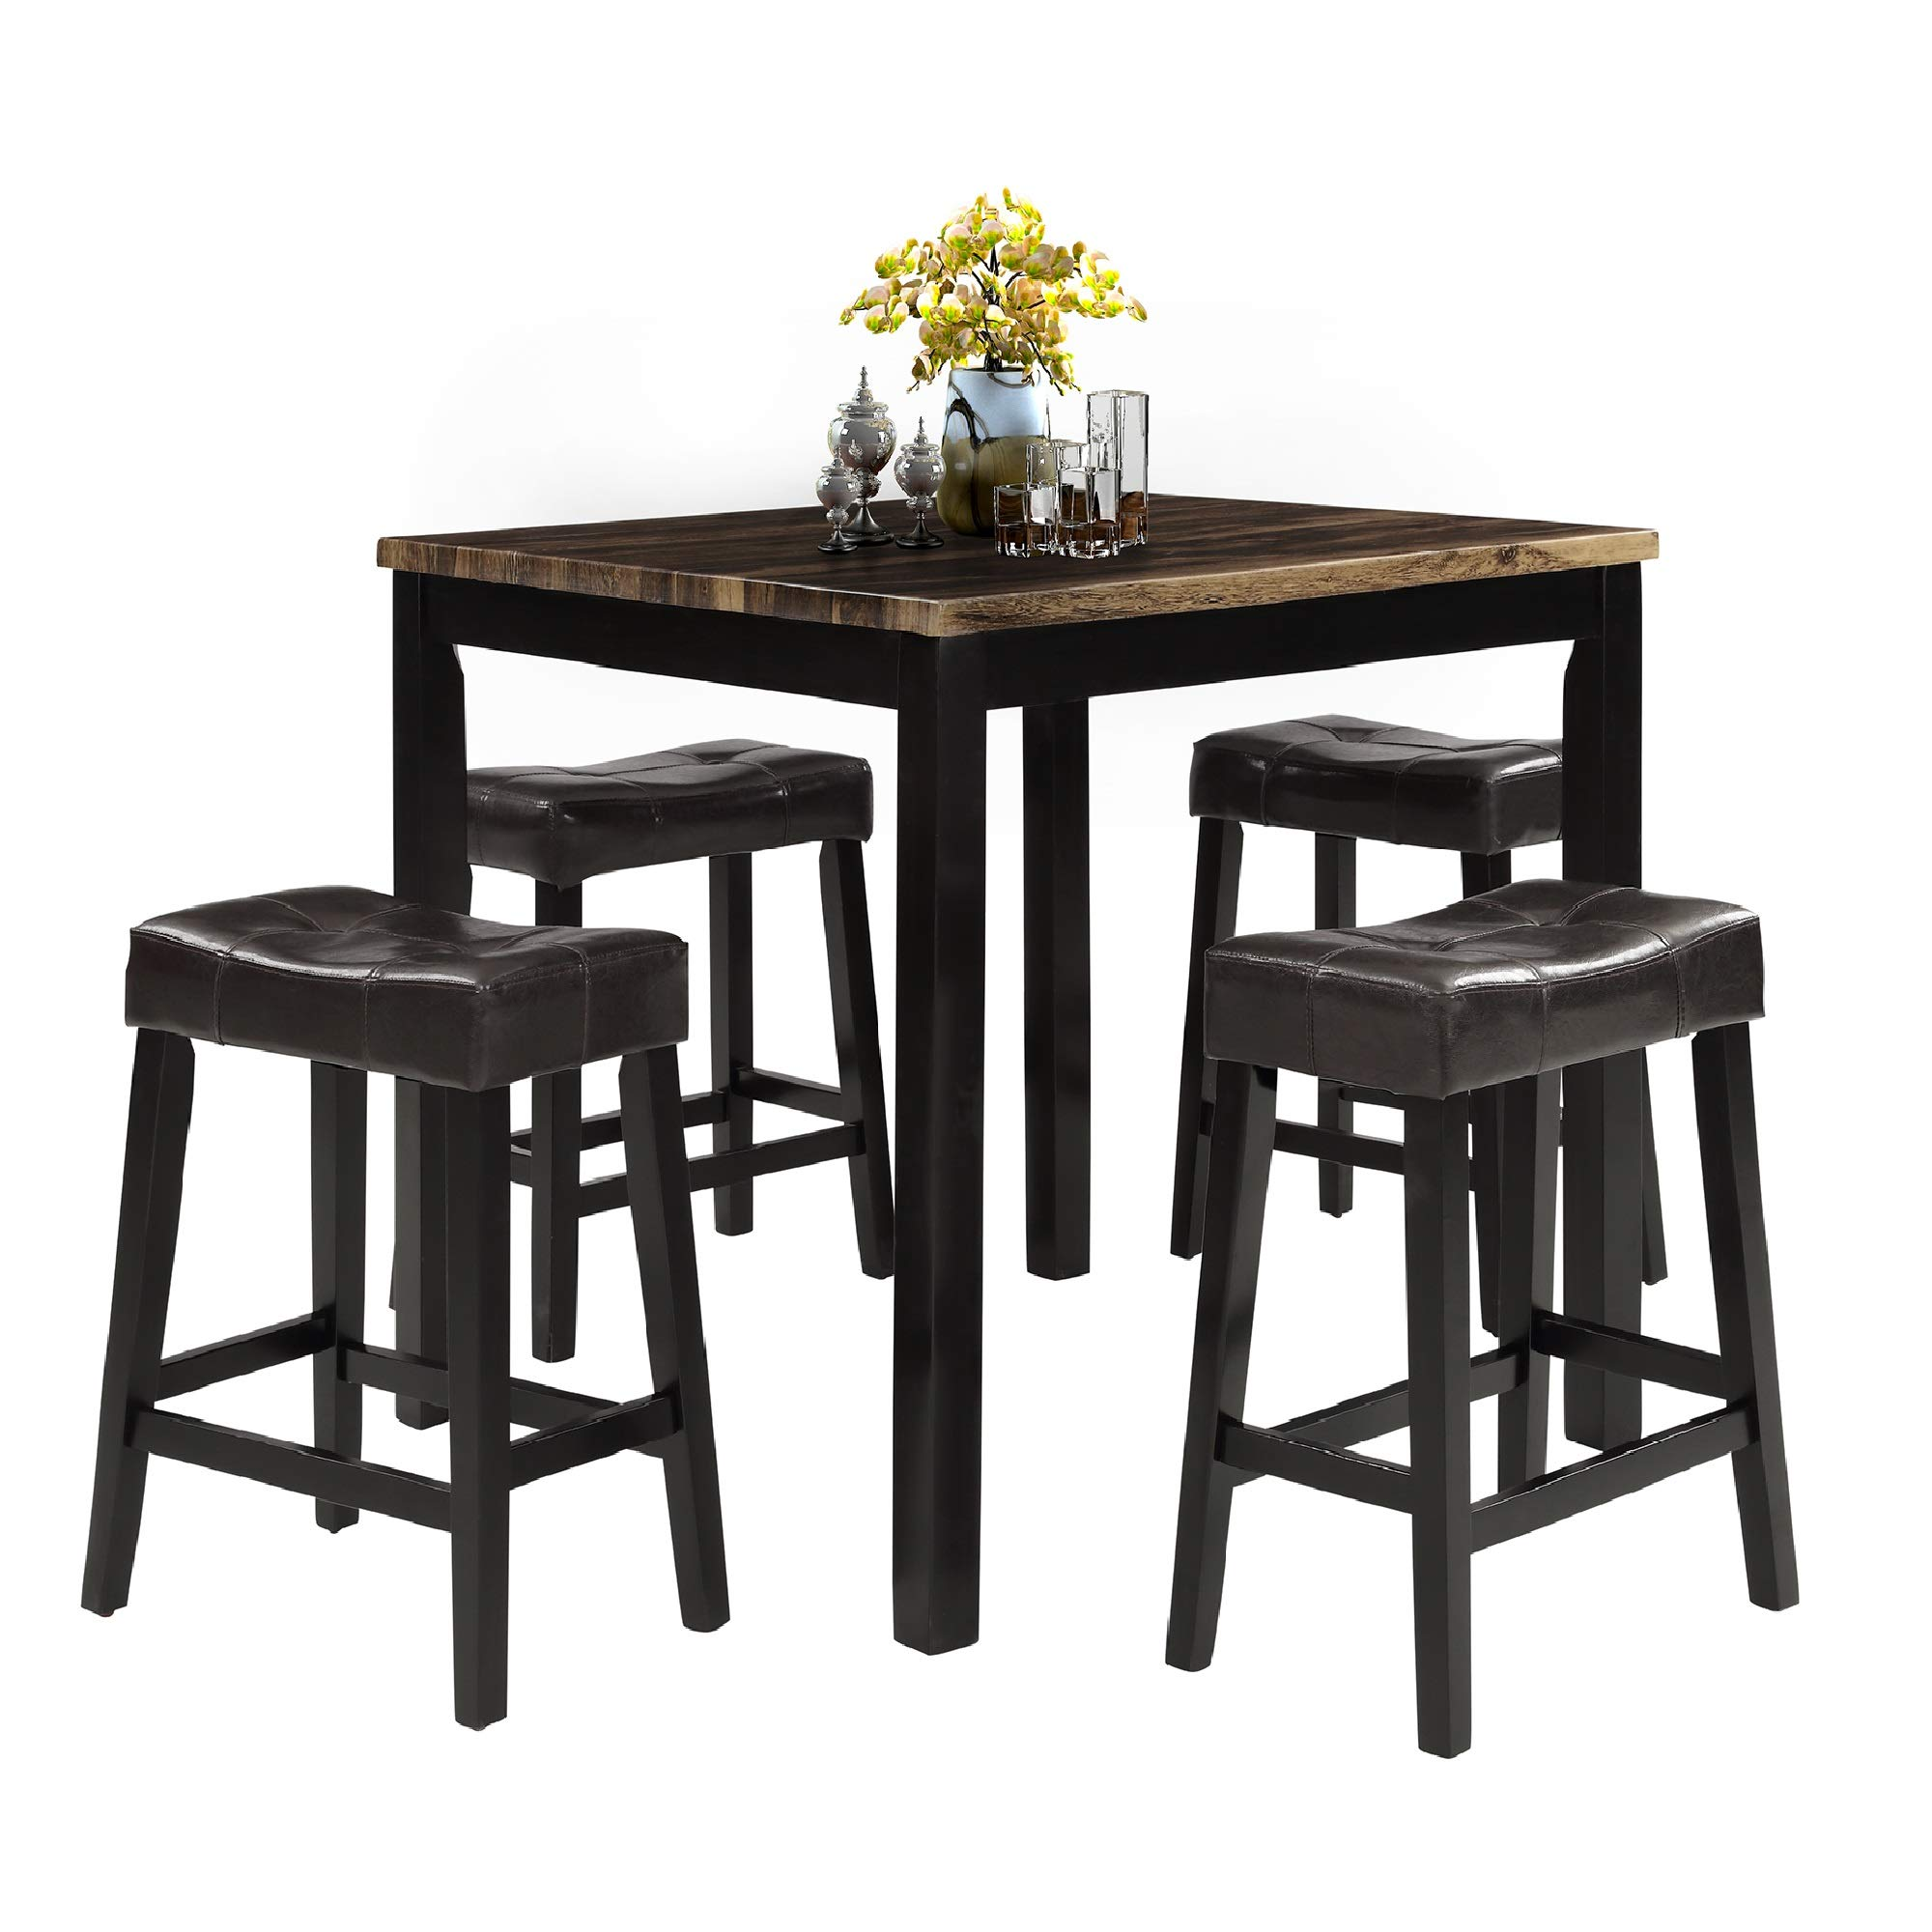 Chair Counter Dining Height Table Chair Pads Amp Cushions